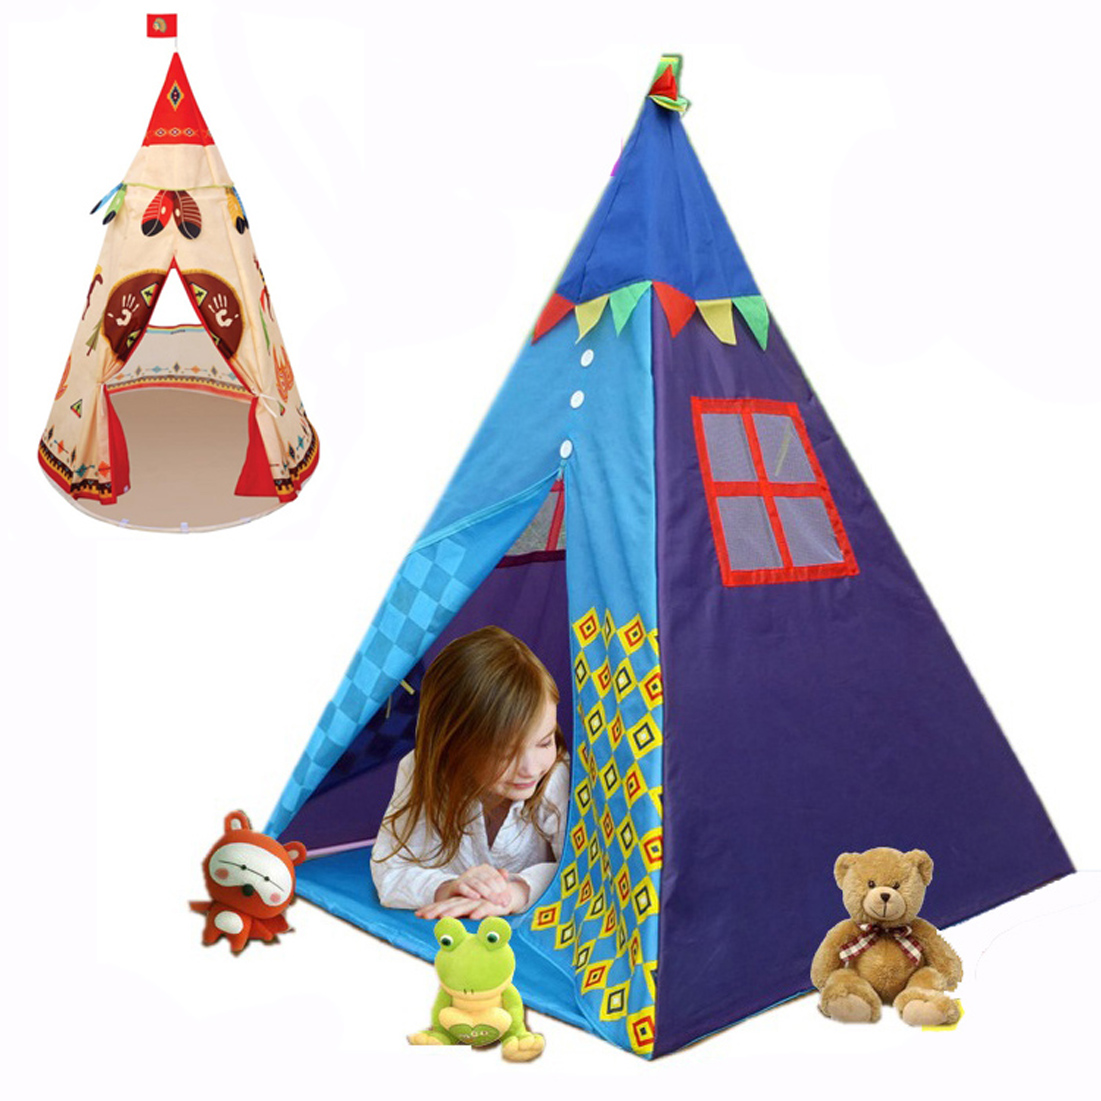 New Princess Teepee Tent Indian Play House Indoor Outdoor Play Tent For Girls And Boys Play Role Play Game